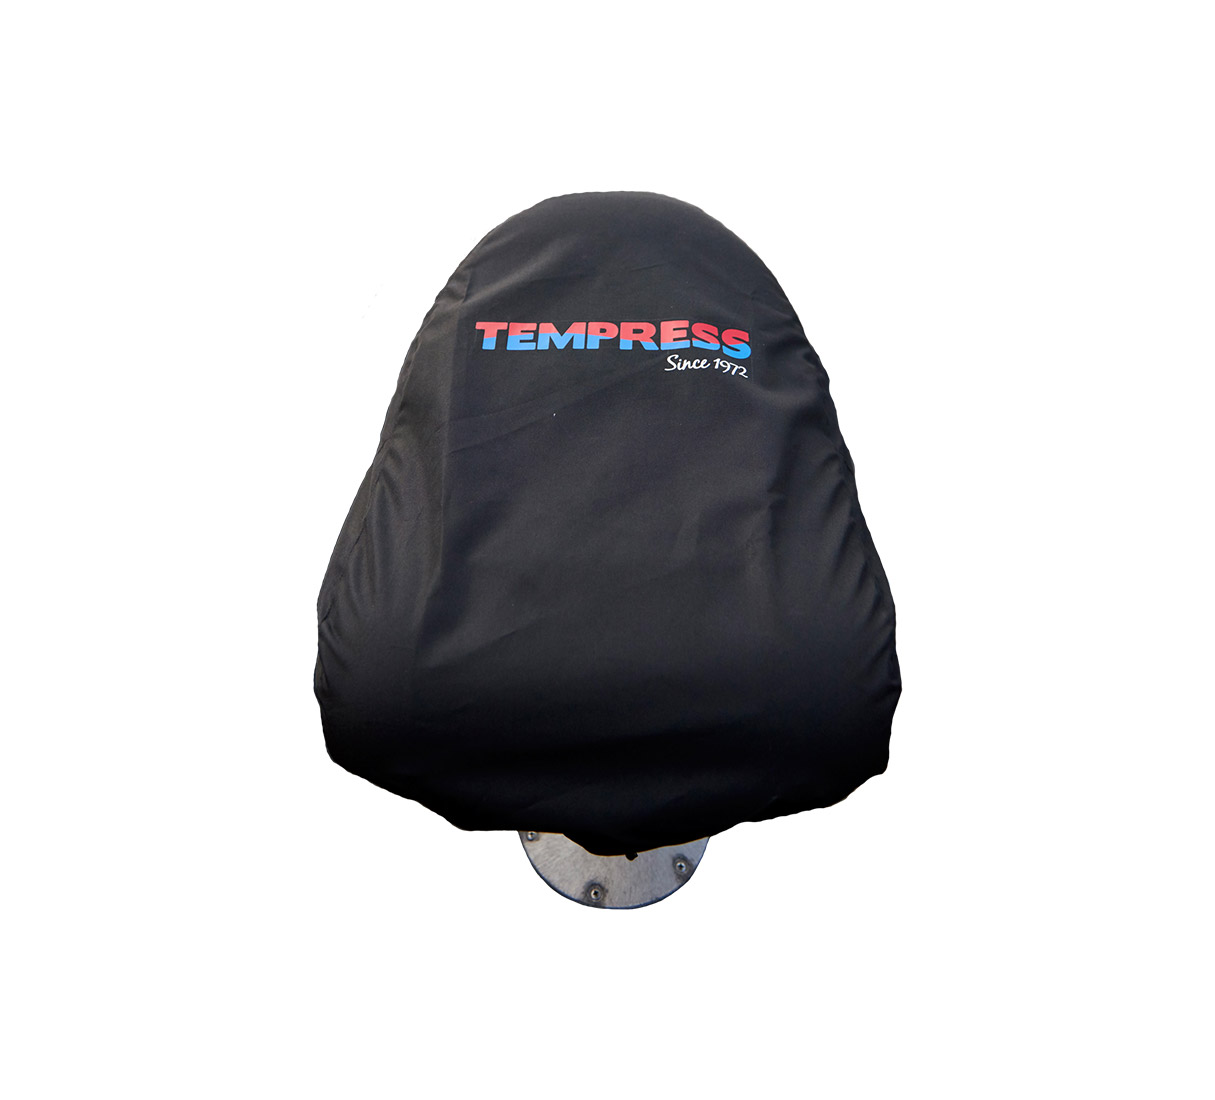 Tempress Premium Boat Seat Cover - Black_1.jpg